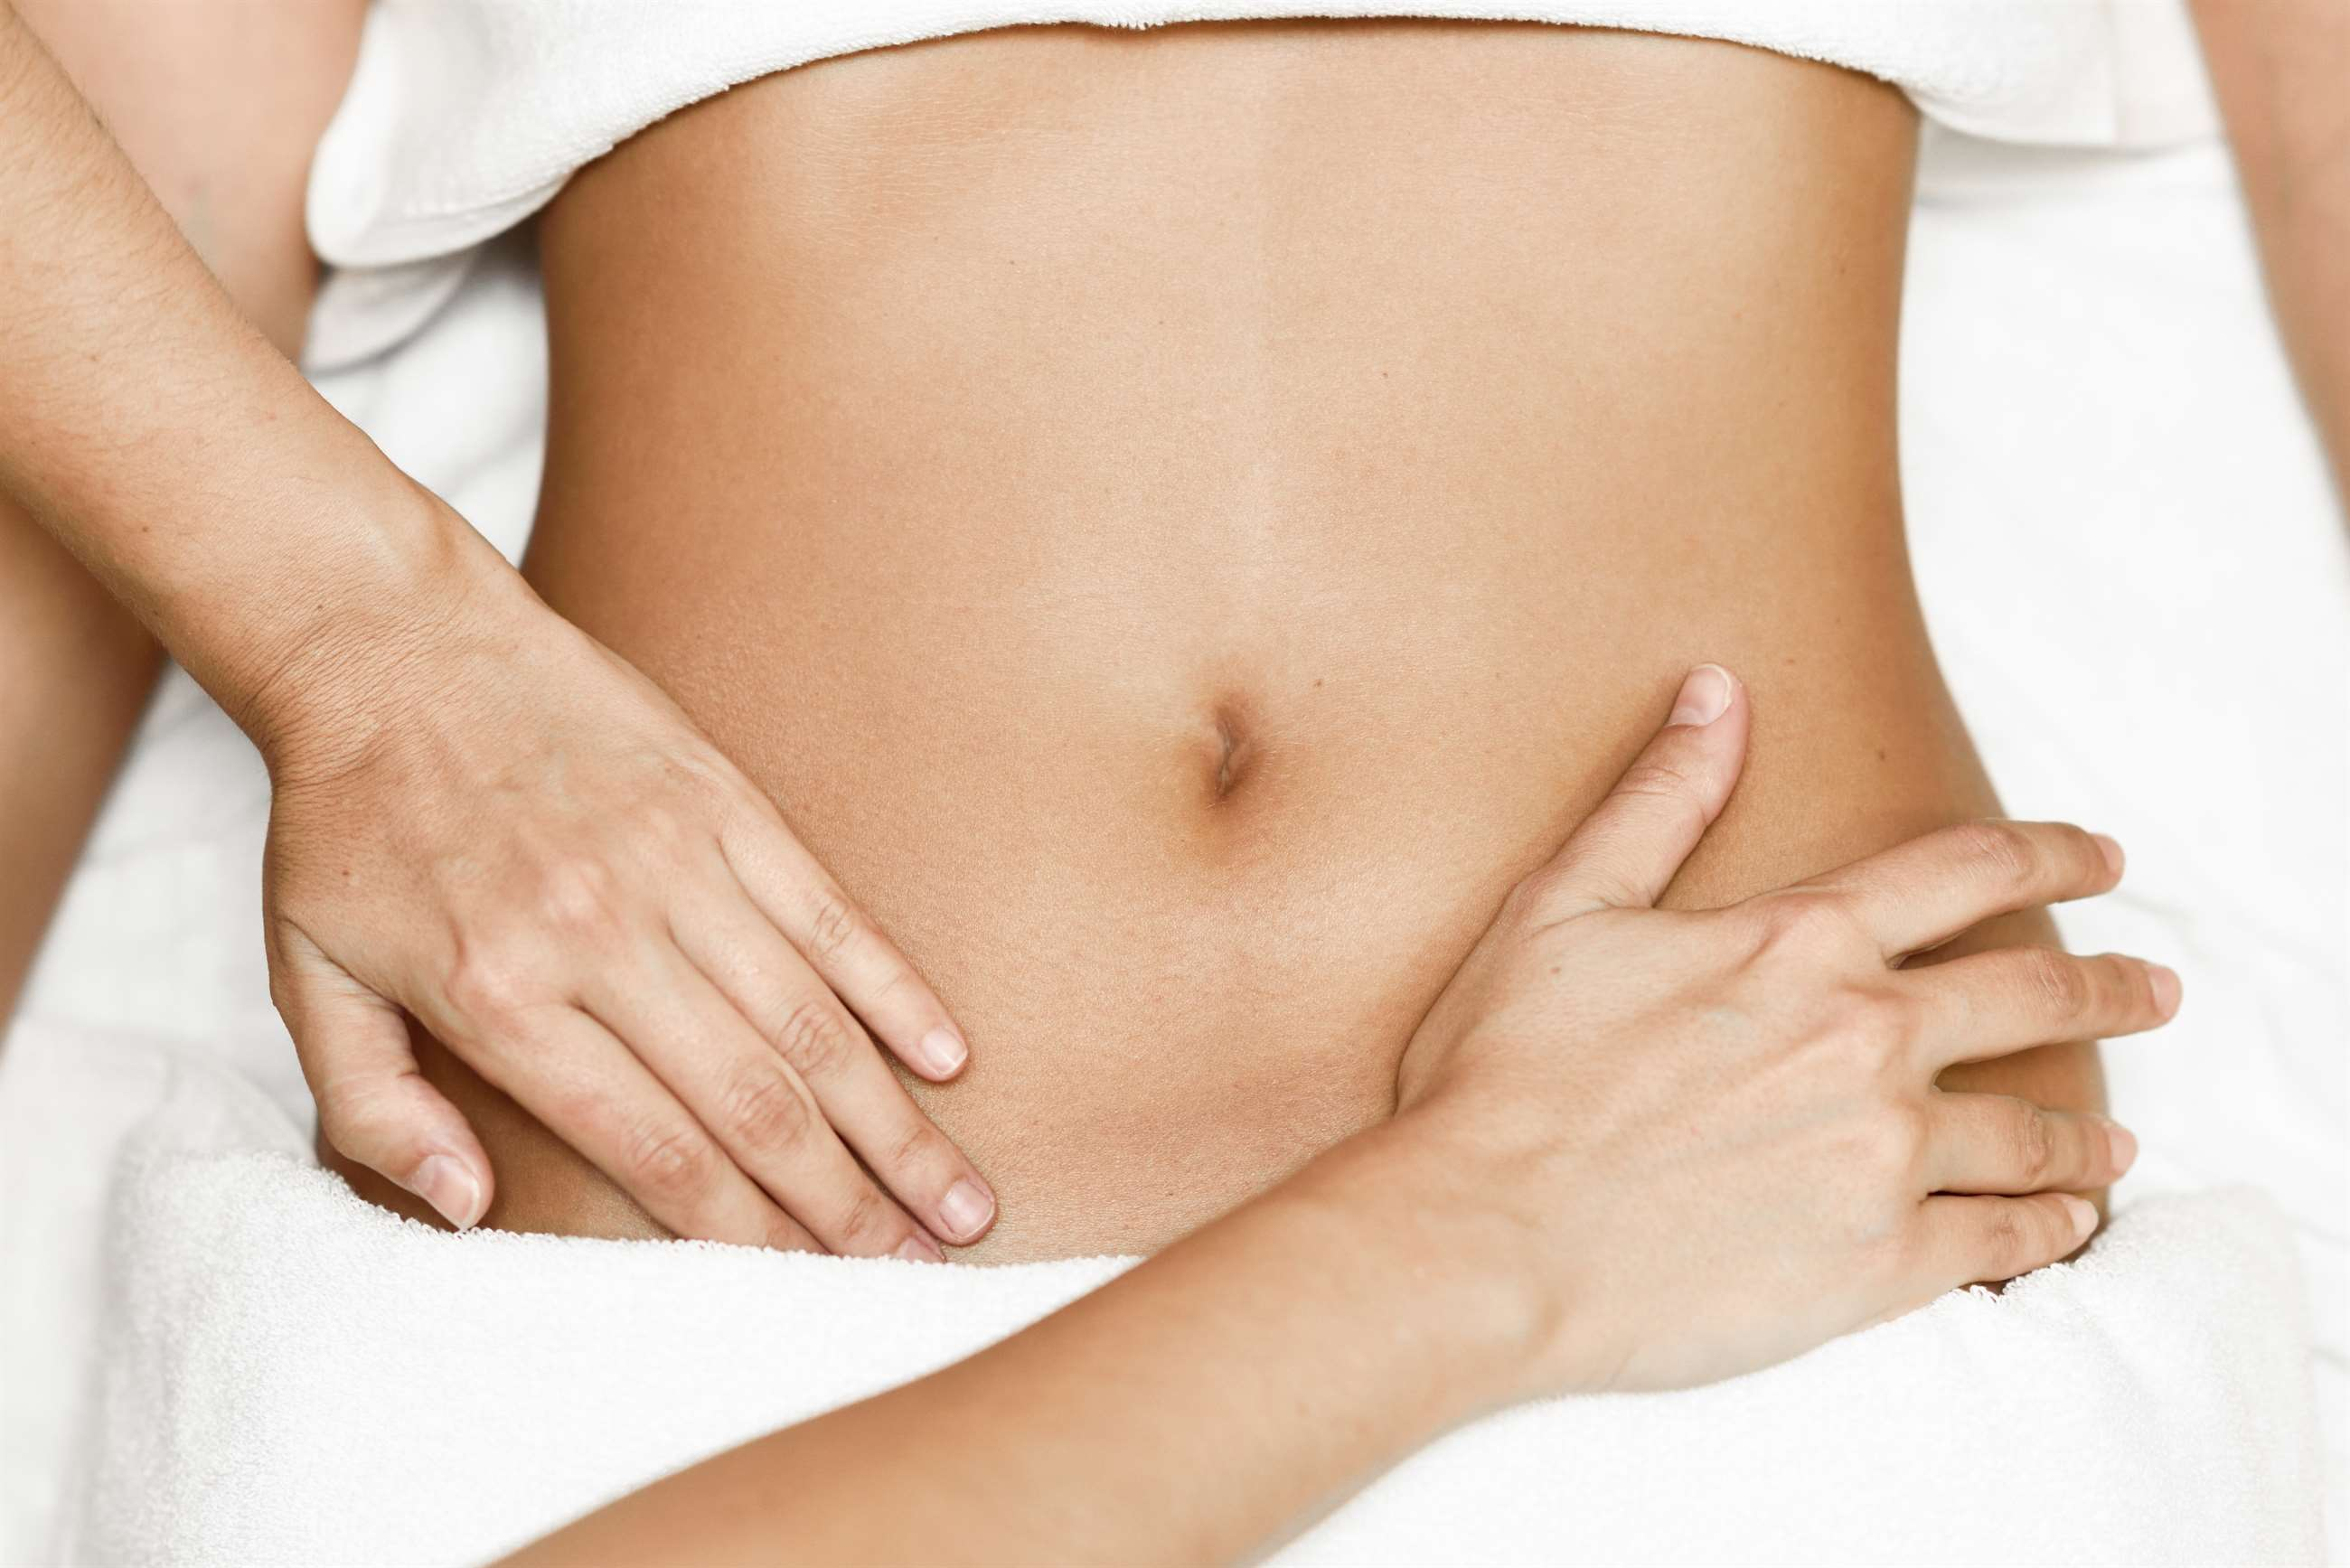 bigstock-hands-massaging-female-abdomen-244348390